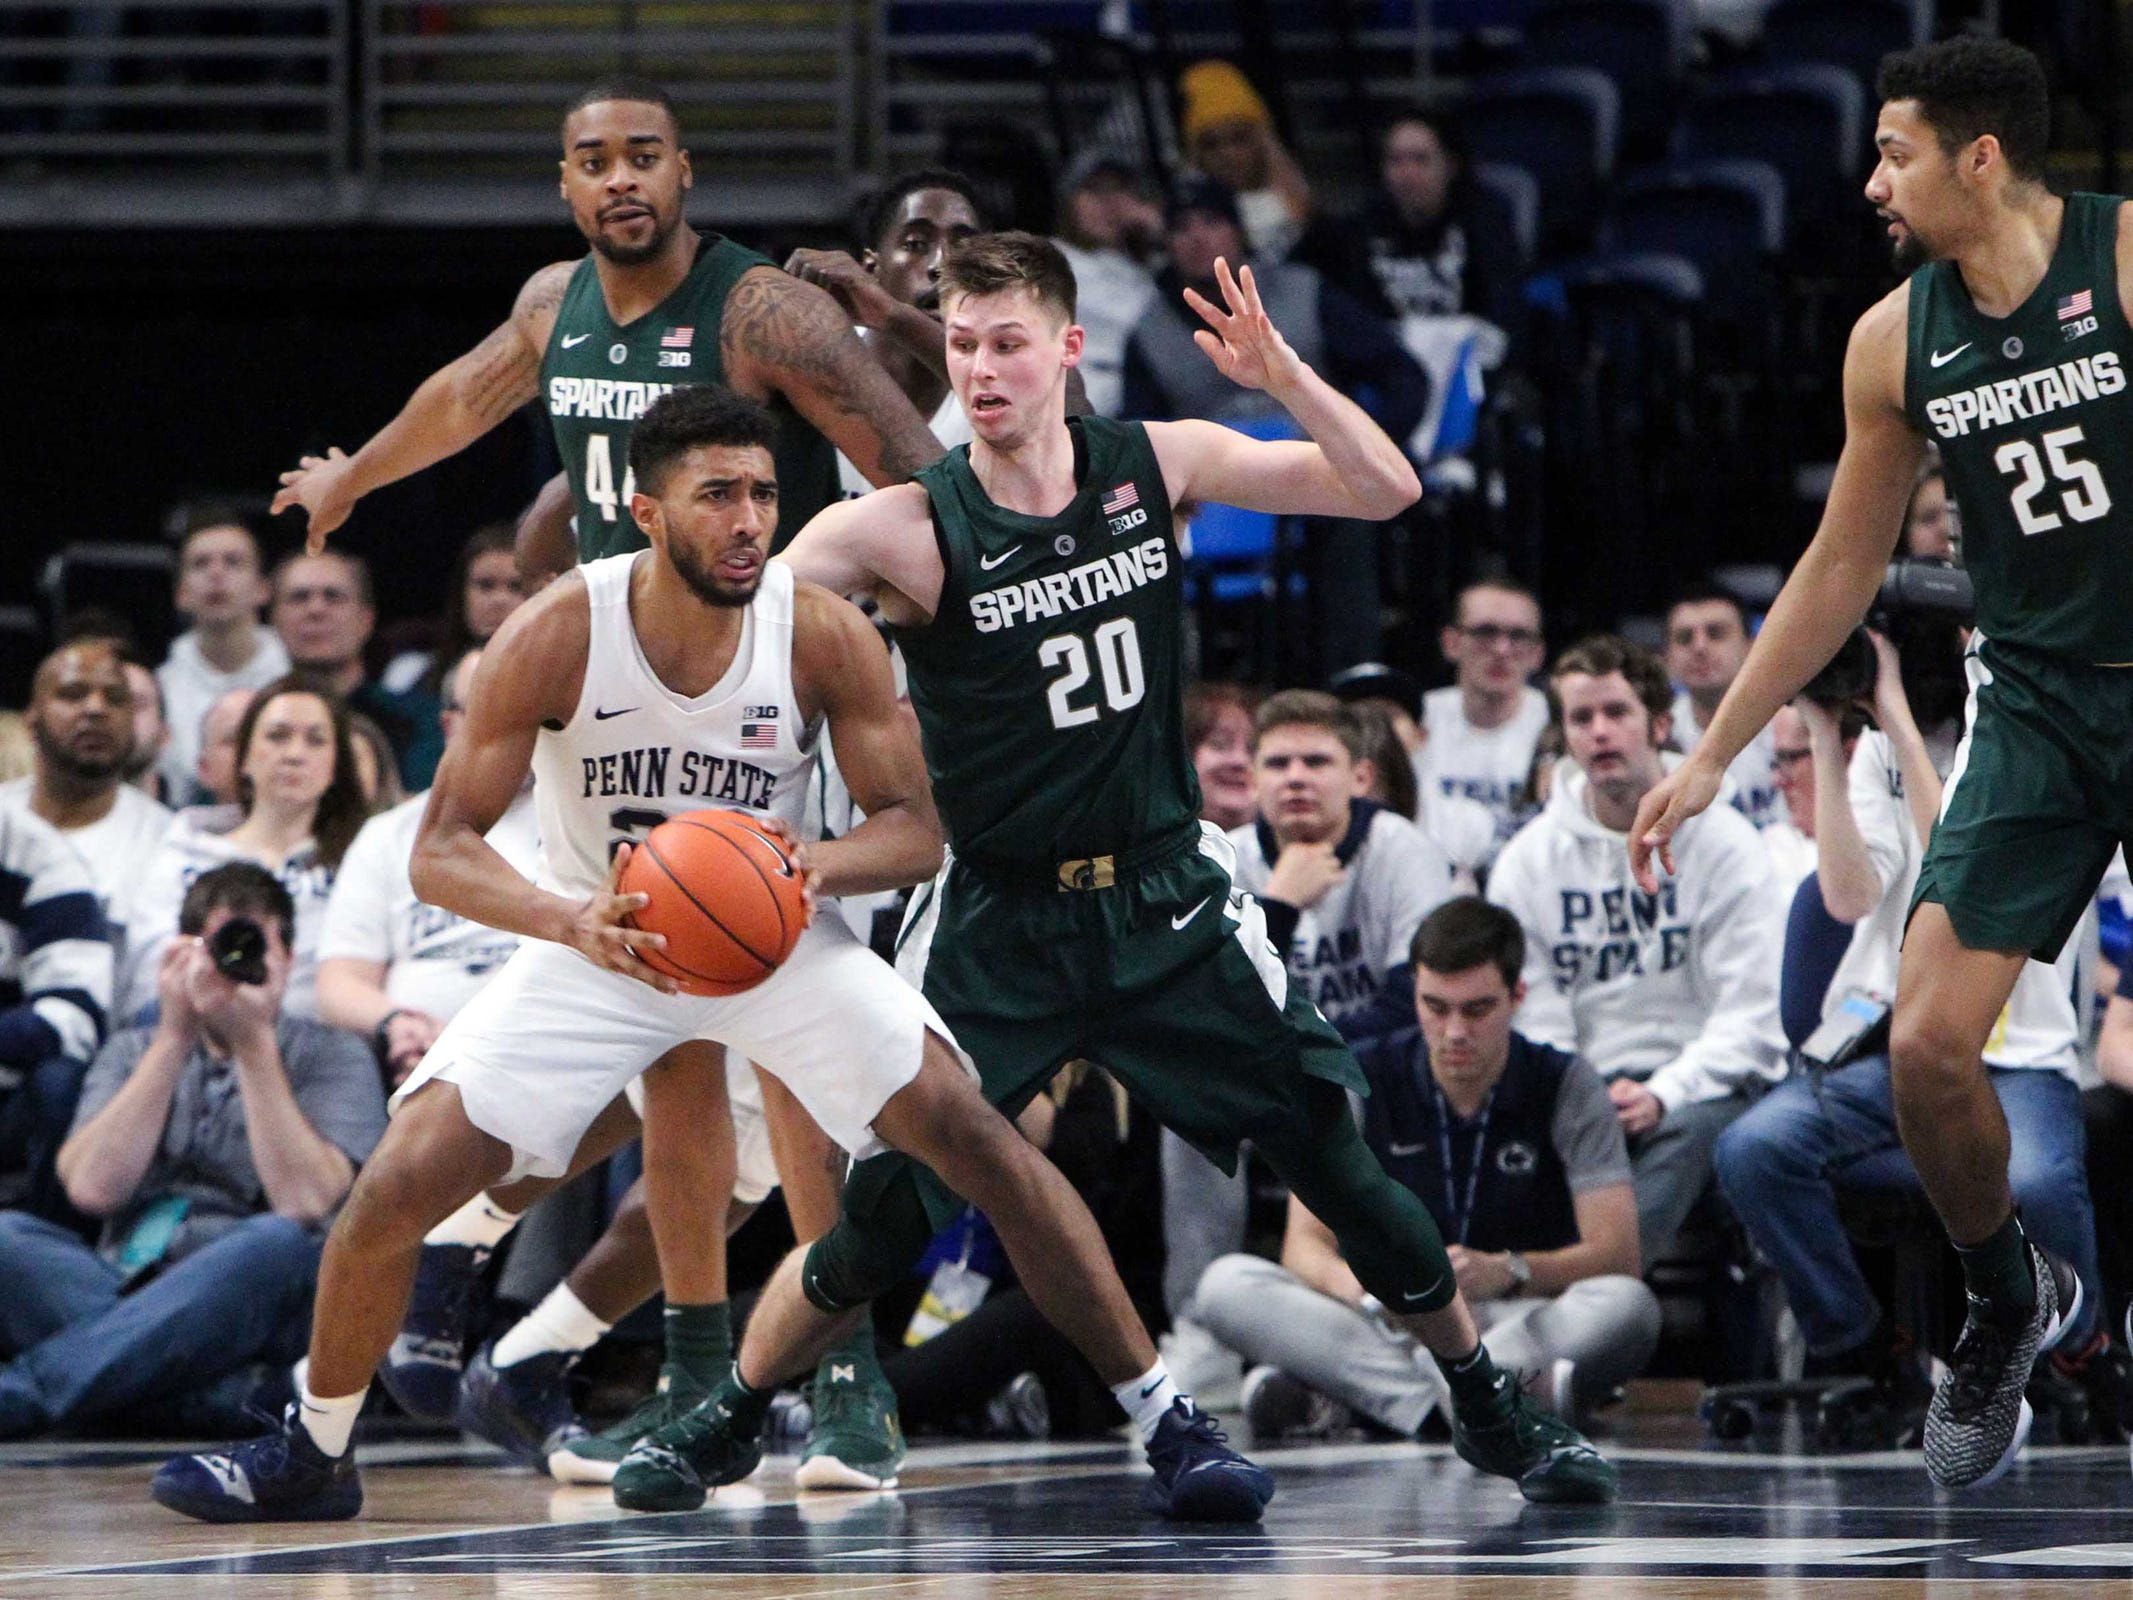 Penn State guard Josh Reaves dribbles against Michigan State guard Matt McQuaid during the second half in State College, Pa. Sunday, Jan. 13, 2019.